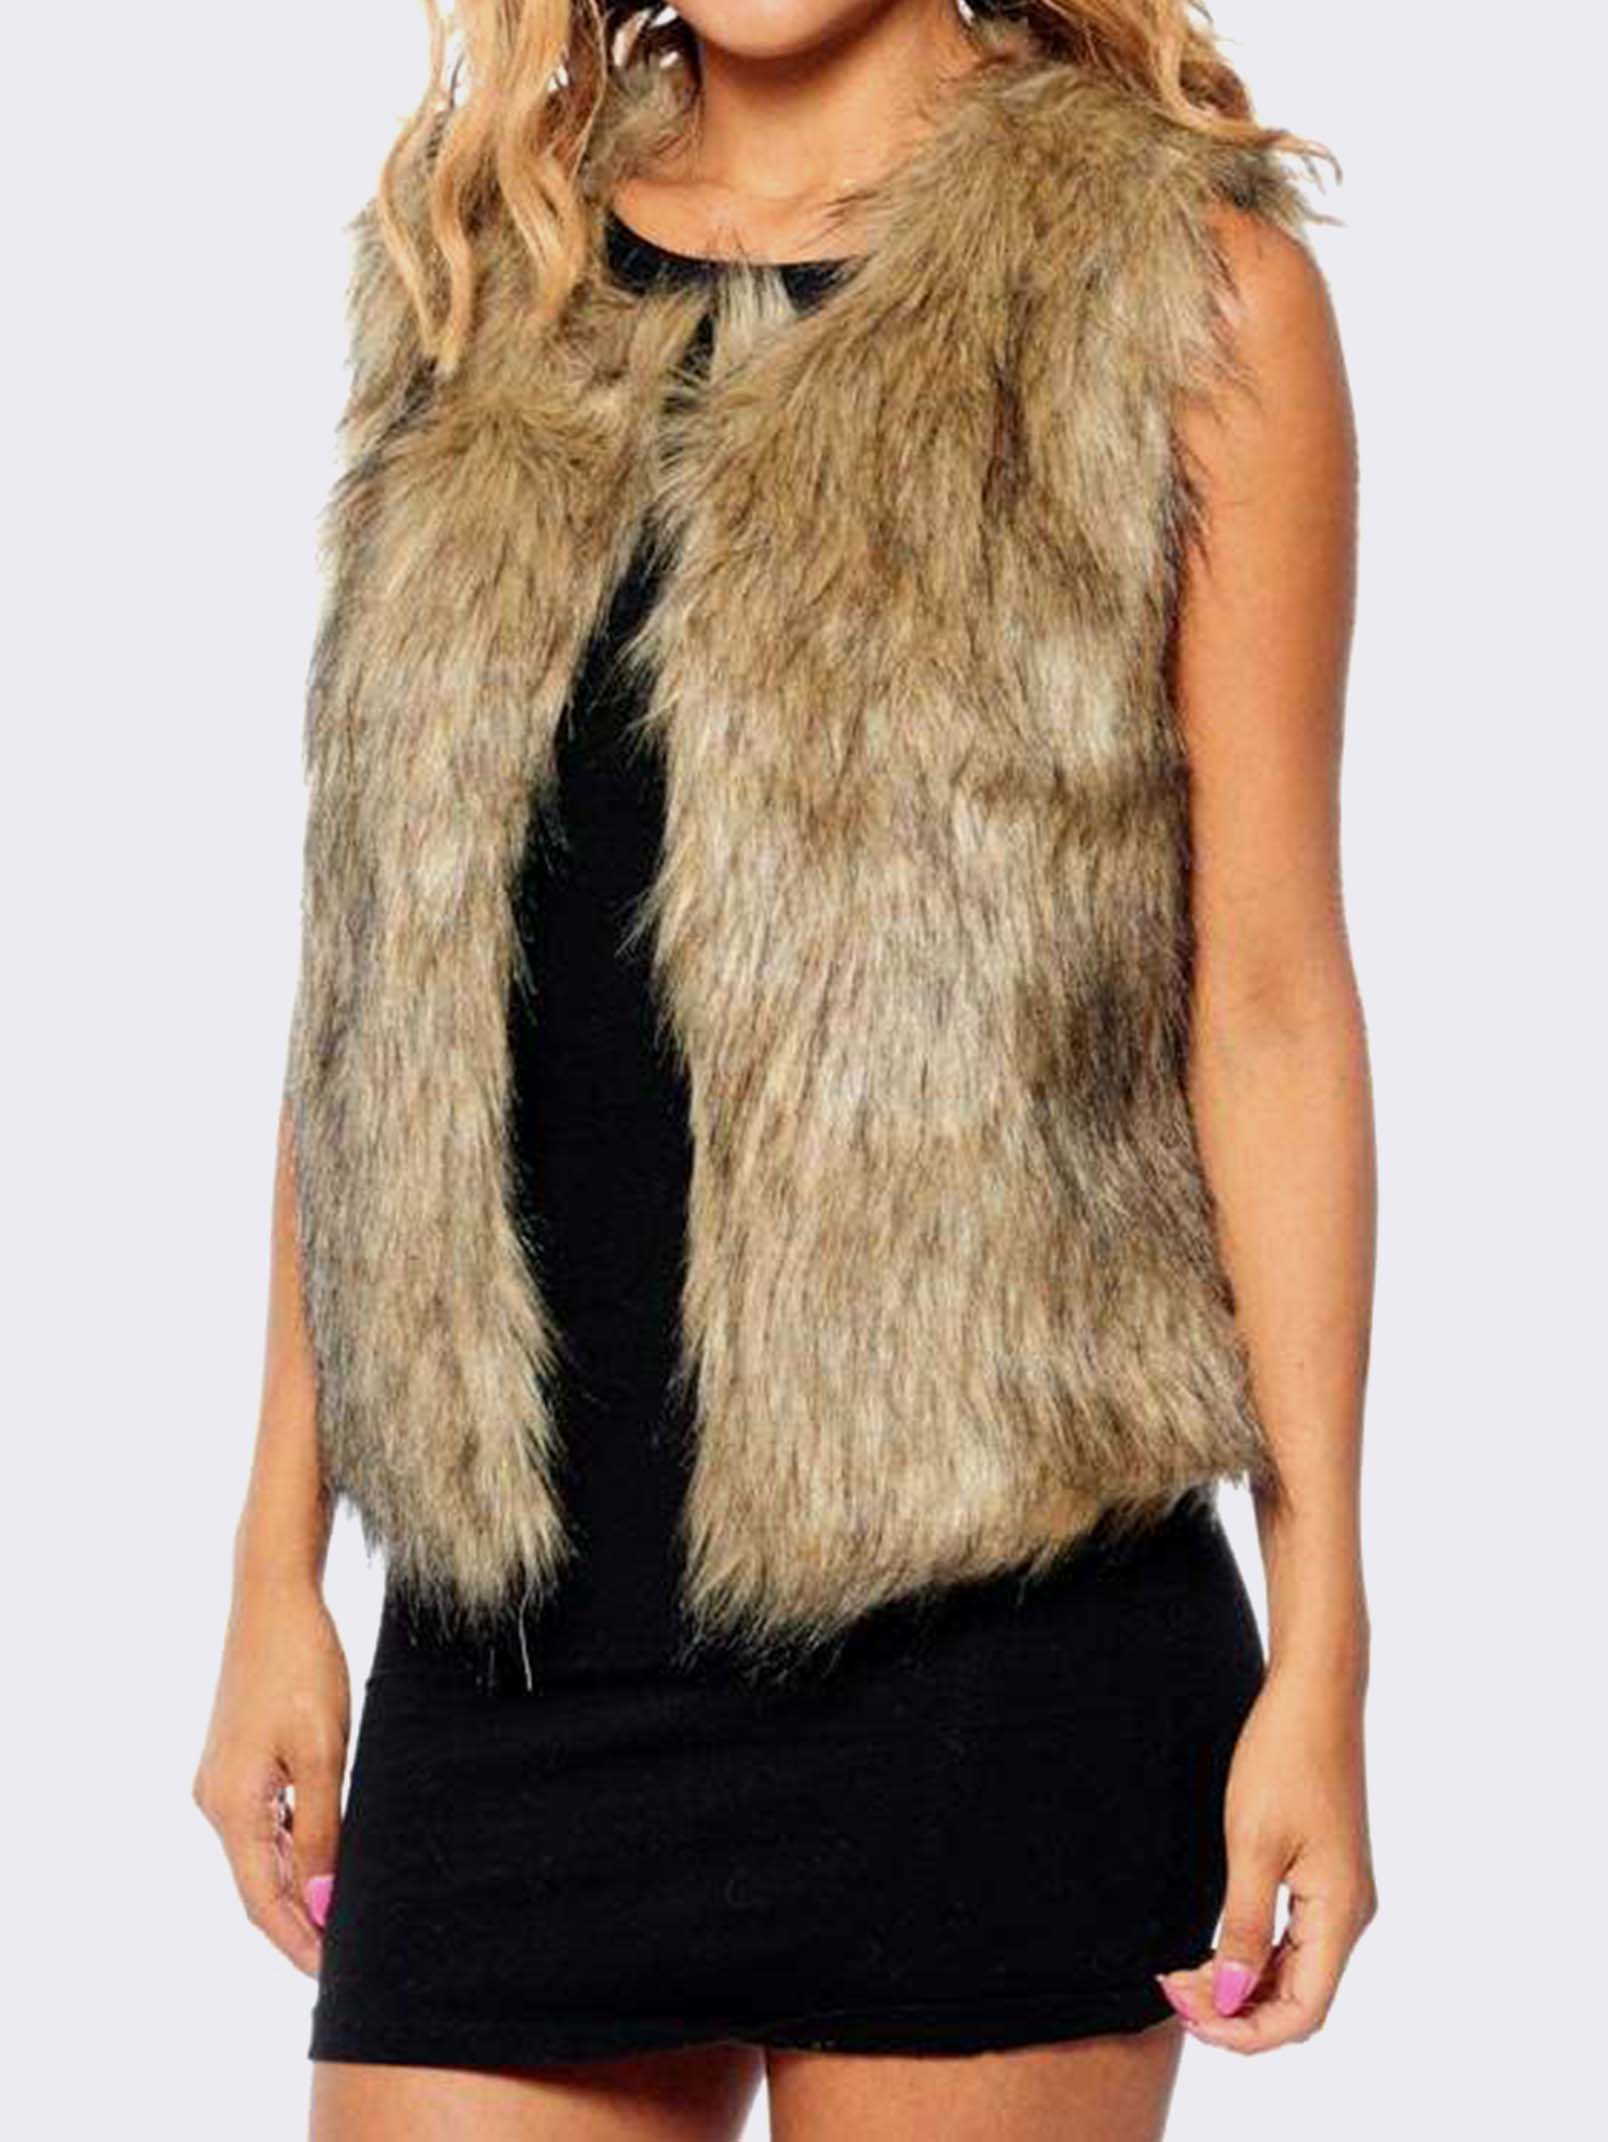 You have exceeded the max quantity of 10 for this product. Please adjust the quantity before adding to cart. You have reached the maximum quantity allowed for this item. Cruelty free and absolutely on trend. This gorgeous faux-fur vest comes in a head turning burgundy. With two side pockets to stash.